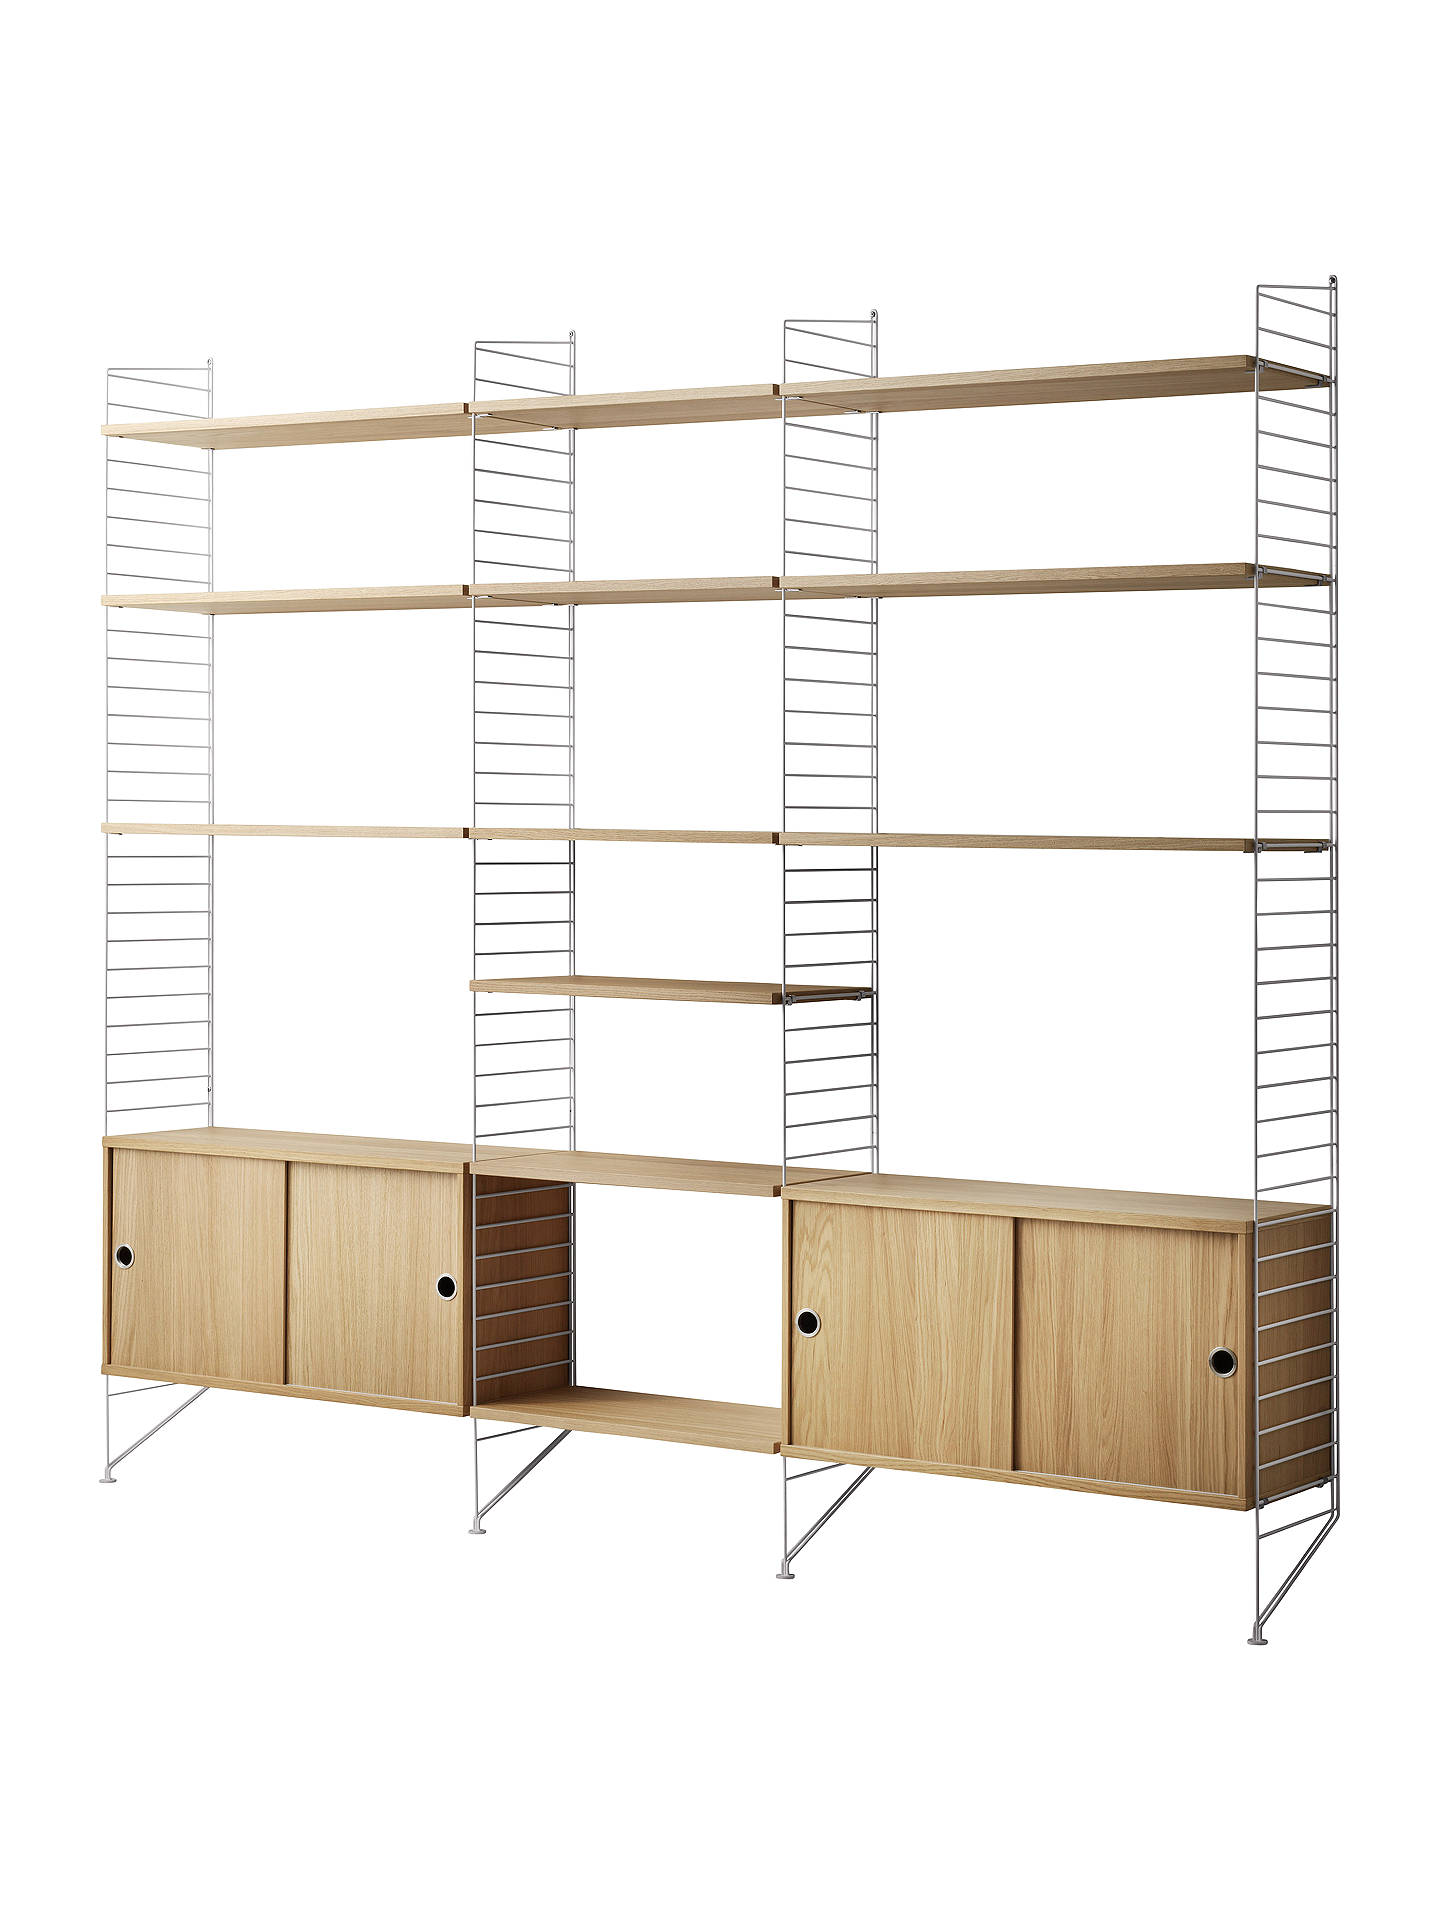 Buystring Shelving Unit with Double Cabinet, Shelves and Wall Fastened Side Racks, Oak/White Online at johnlewis.com